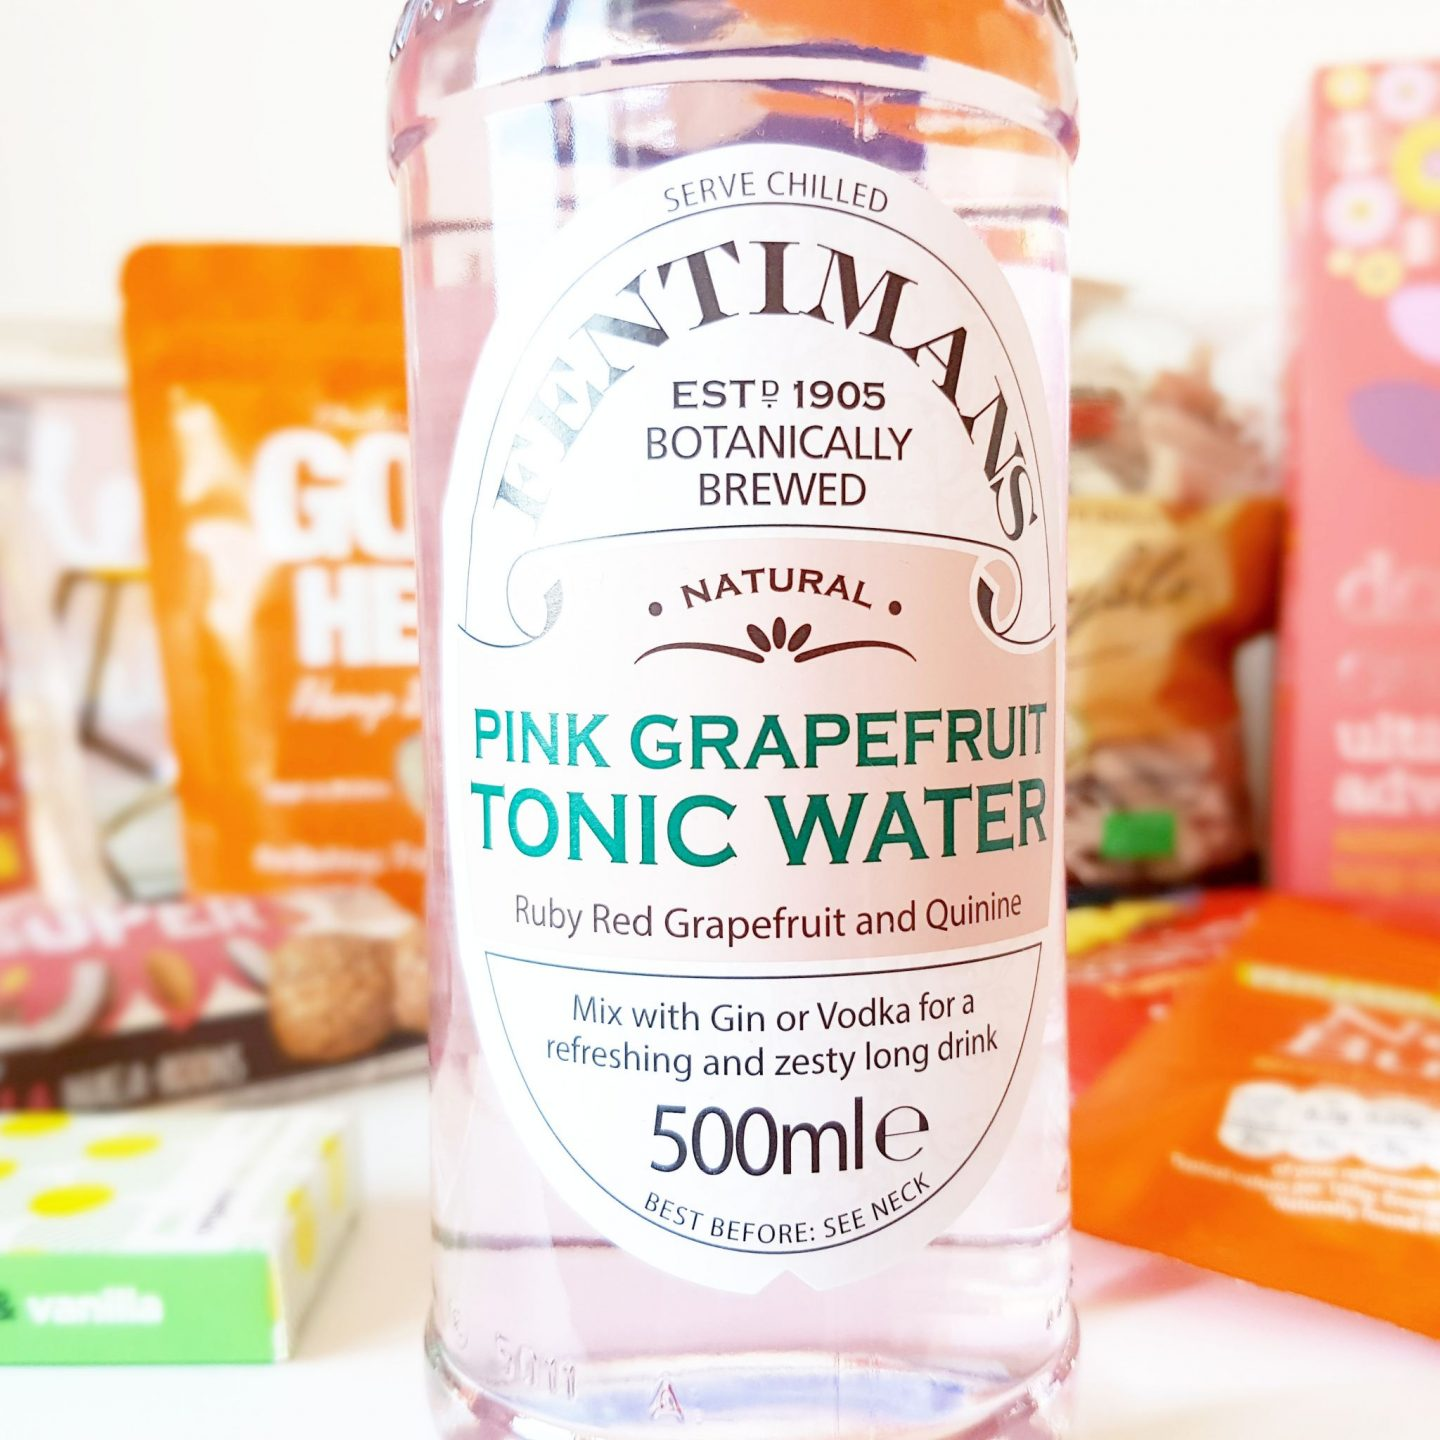 Degustabox | Fentiman's Pink Grapefruit and Tonic Water